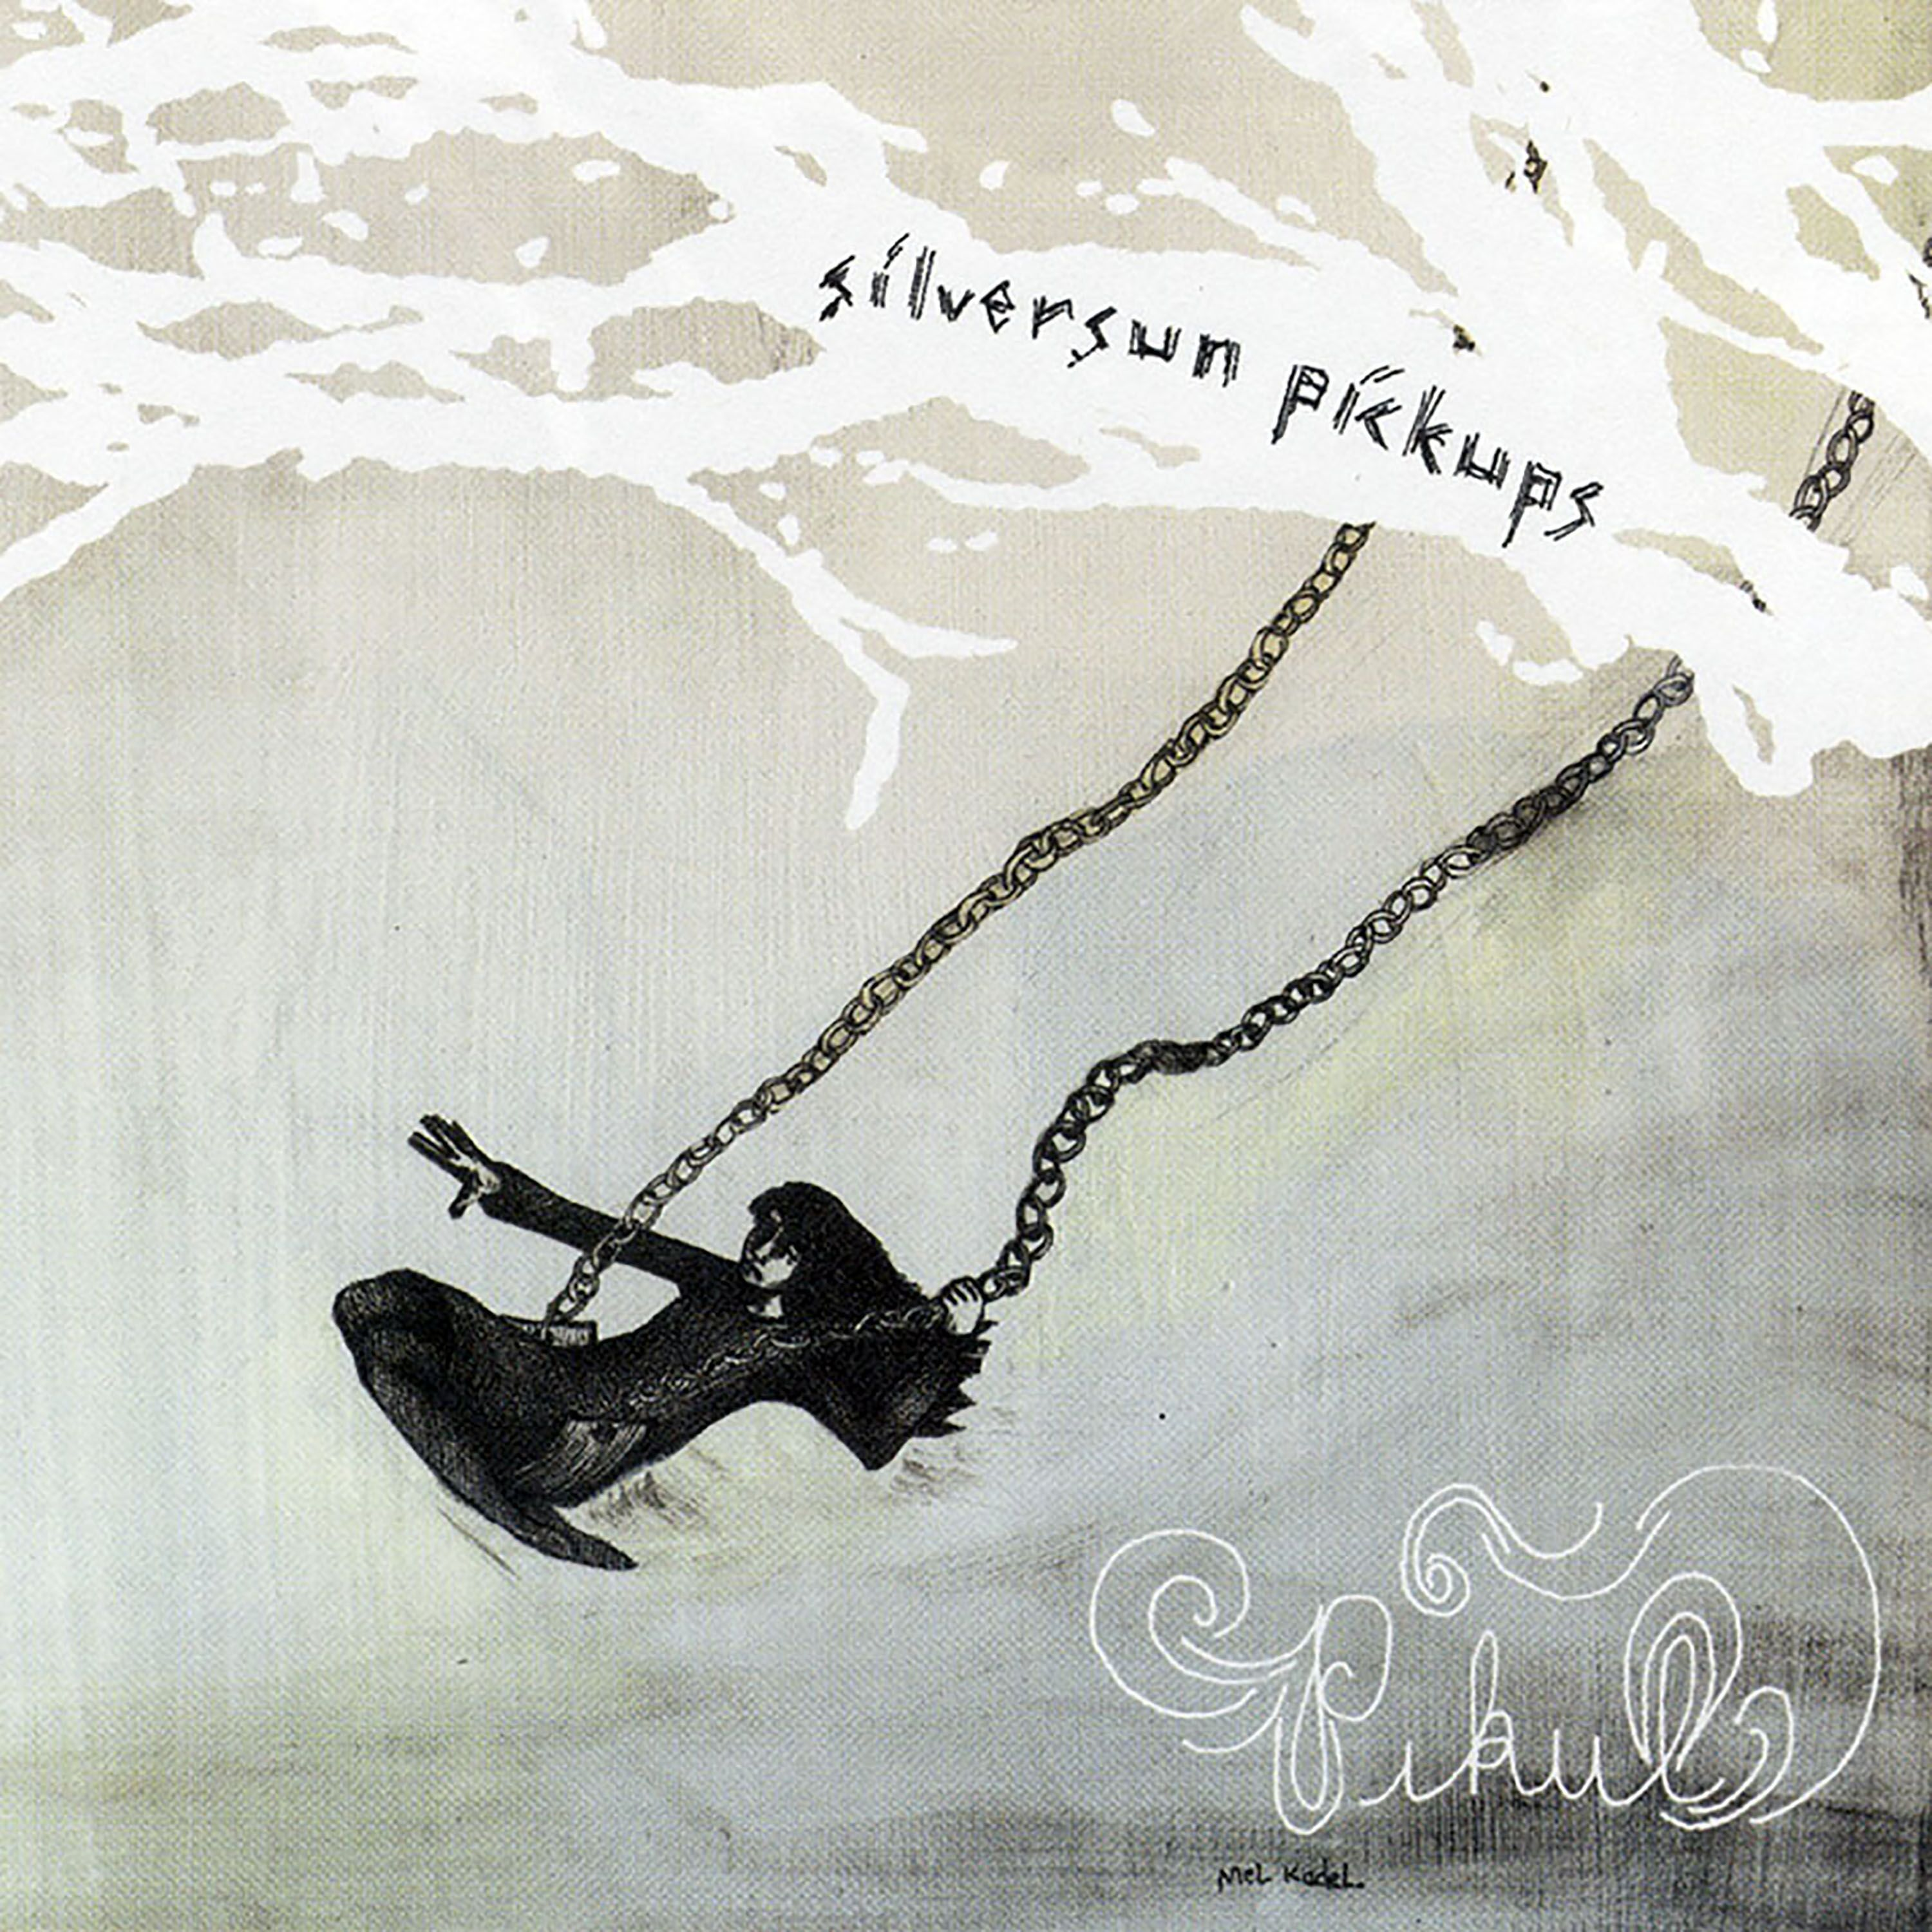 Silversun Pickups - Pikul - Digital